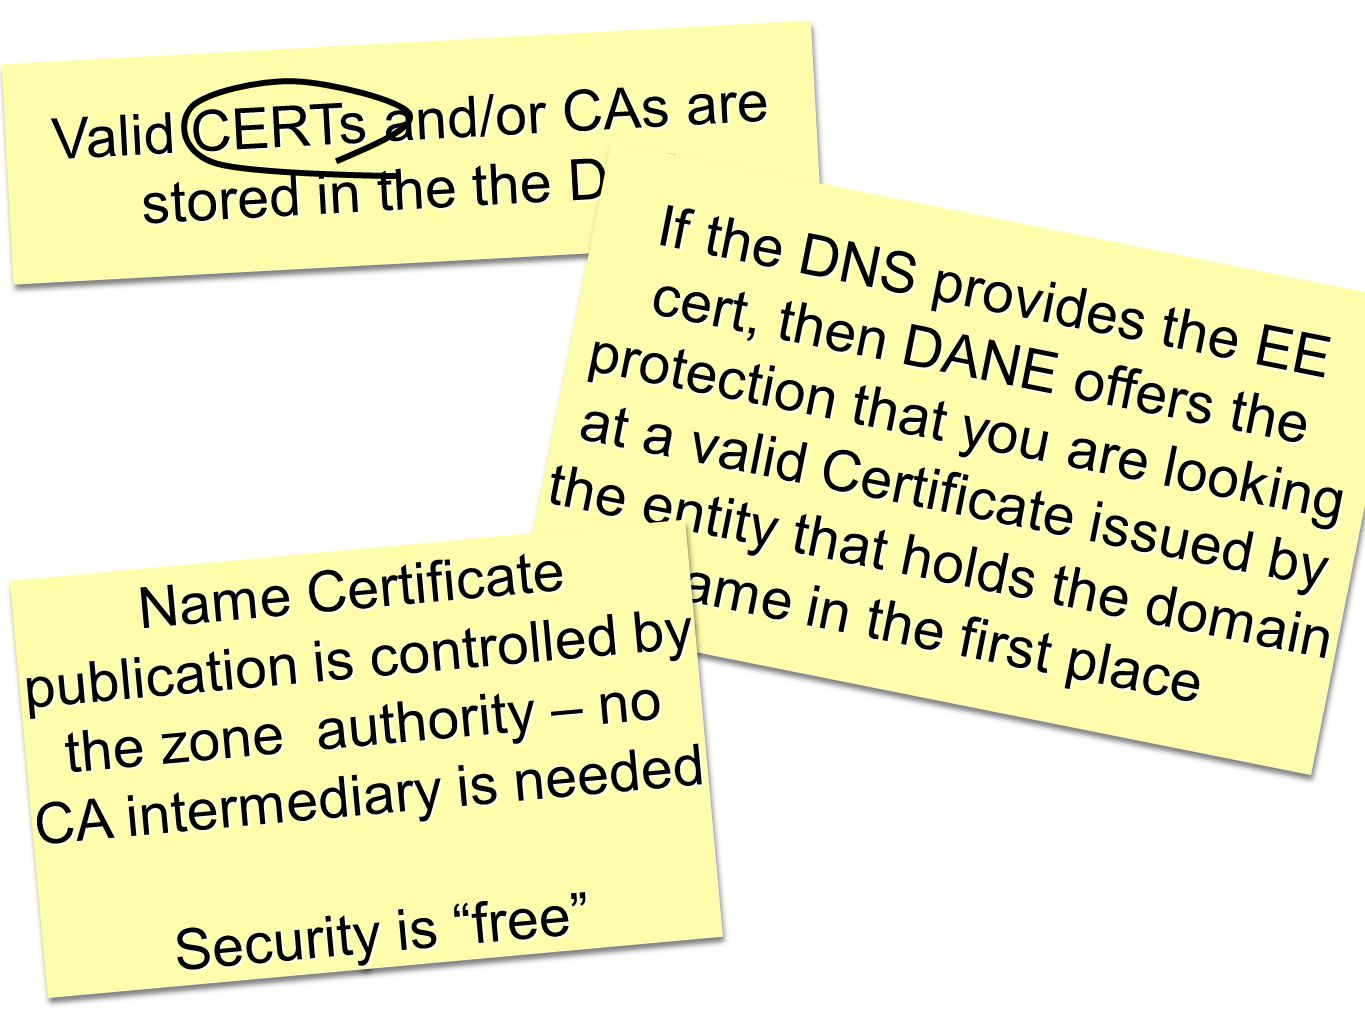 Valid CERTs and/or CAs are stored in the the DNS If the DNS provides the EE cert, then DANE offers the protection that you are looking at a valid Certificate issued by the entity that holds the domain name in the first place Name Certificate publication is controlled by the zone authority – no CA intermediary is needed Security is free Security is free Name Certificate publication is controlled by the zone authority – no CA intermediary is needed Security is free Security is free